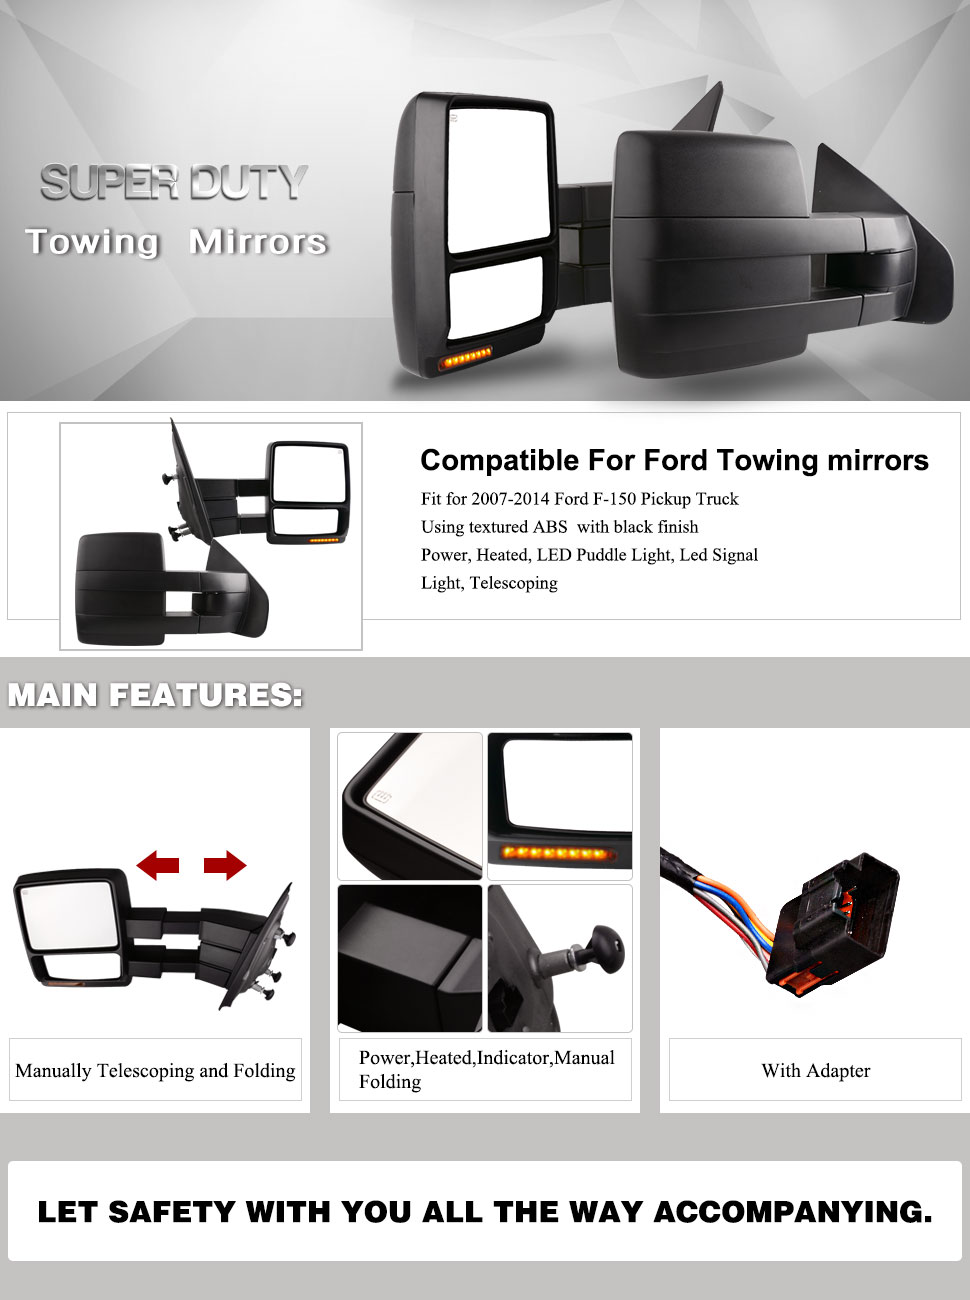 lighted heated tow mirror wiring diagram wiring library Silverado Power Mirror Wiring Diagram lighted heated tow mirror wiring diagram